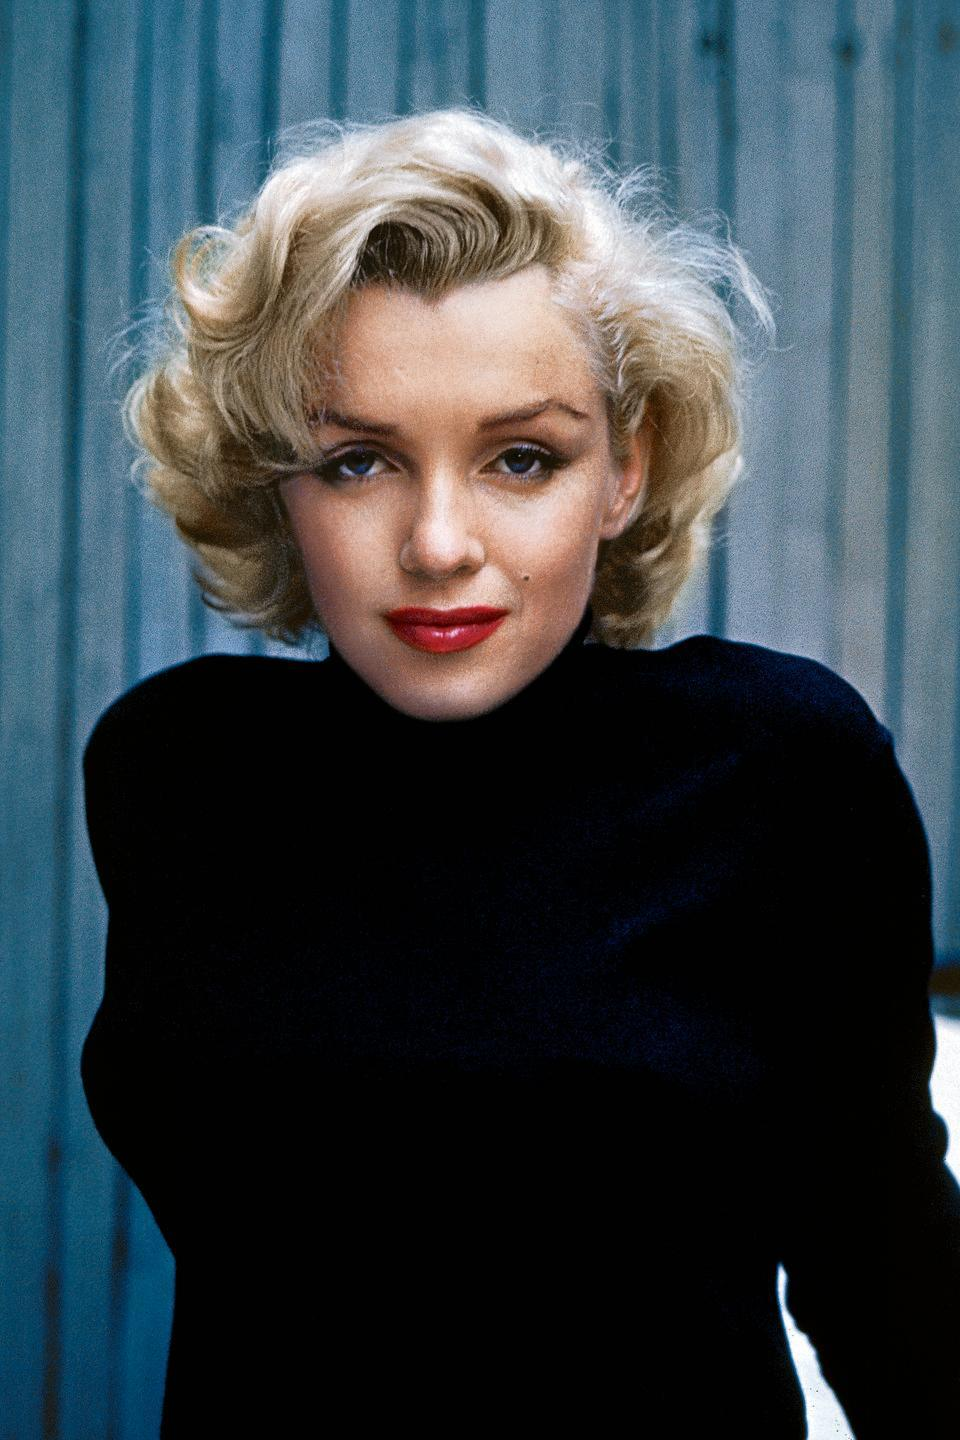 """<p><strong>Born</strong>: Norma Jeane Mortenson<strong><br></strong></p><p>Most probably know by now that the illustrious Marilyn Monroe grew up being called Norma Jeane (she was born to the last name Mortenson, baptized as Baker, and later married into Dougherty). But, do you know the story of how she became Marilyn?</p><p>According to <em><a href=""""https://time.com/5368339/marilyn-monroe-real-name-story/"""" rel=""""nofollow noopener"""" target=""""_blank"""" data-ylk=""""slk:Time"""" class=""""link rapid-noclick-resp"""">Time</a></em>, the actress ditched her first husband's surname because a 20th Century Fox studio executive thought that there would be too many interpretations of its pronunciation. Norma Jeane suggested the last name """"Monroe,"""" a name on her mother's side of the family, while the studio exec handed her """"Marilyn,"""" because she reminded him of 1920s Broadway starlet Marilyn Miller. </p>"""